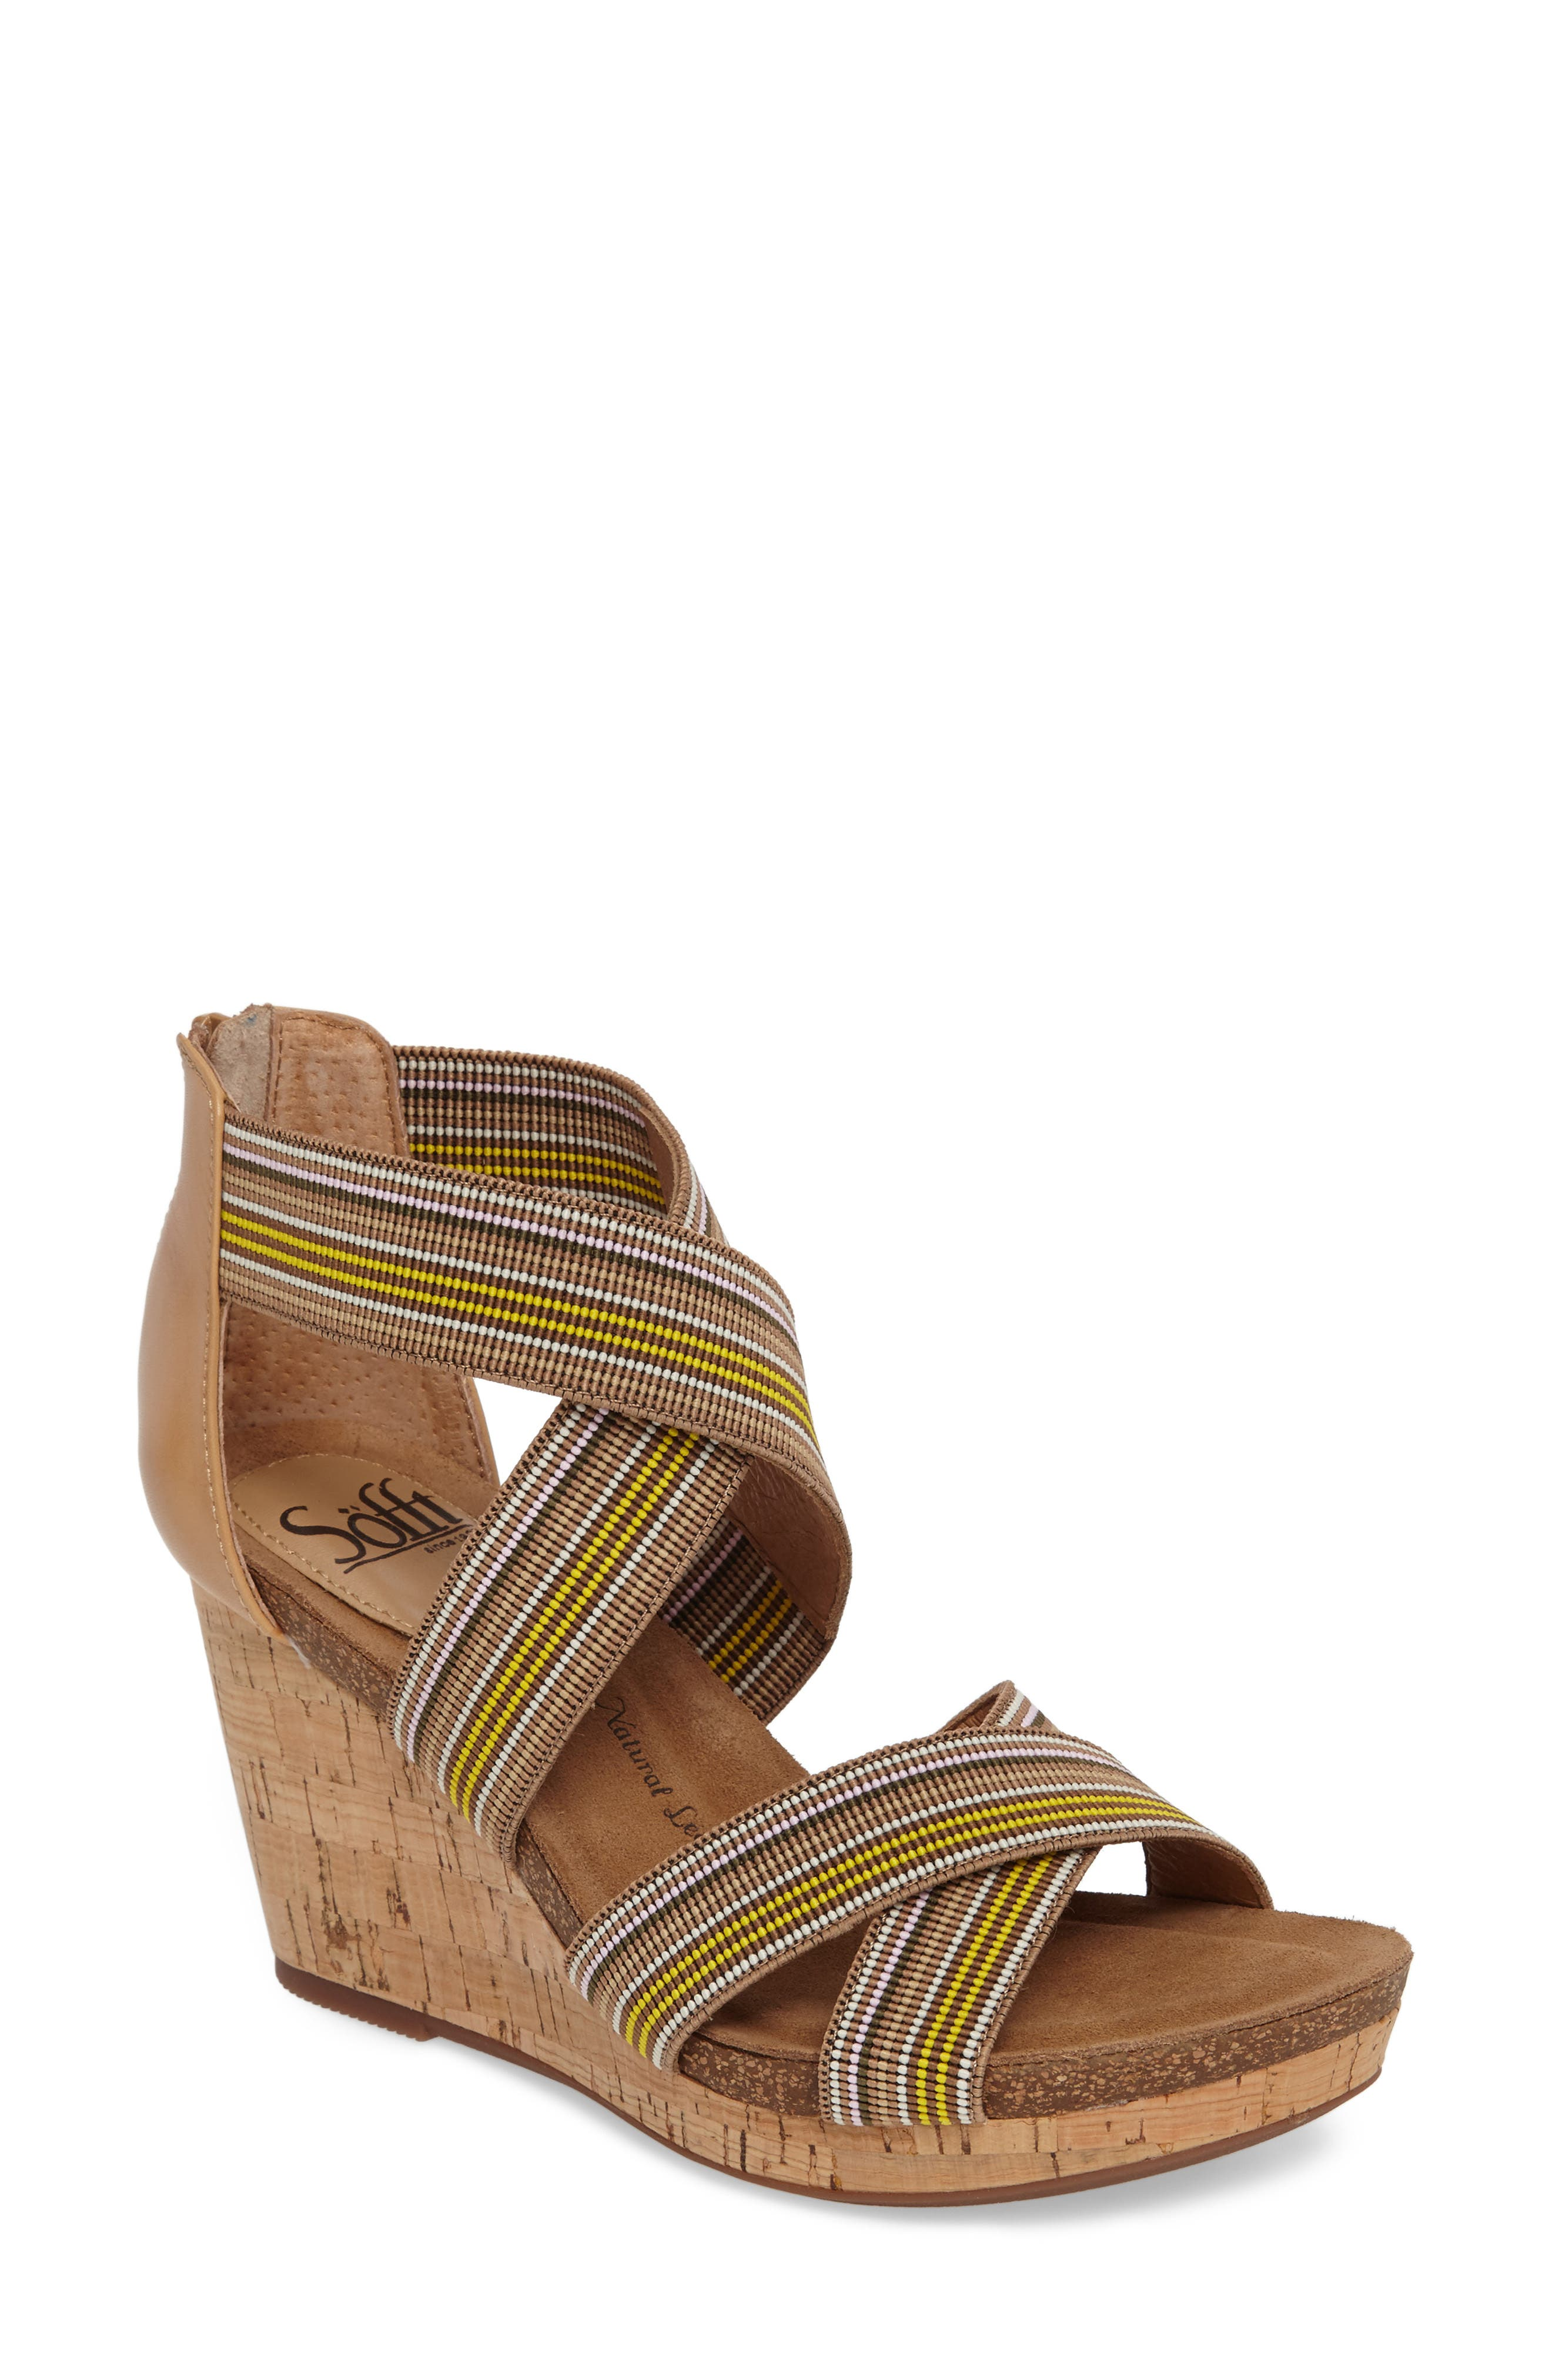 Alternate Image 1 Selected - Söfft Cary Cross Strap Wedge Sandal (Women)